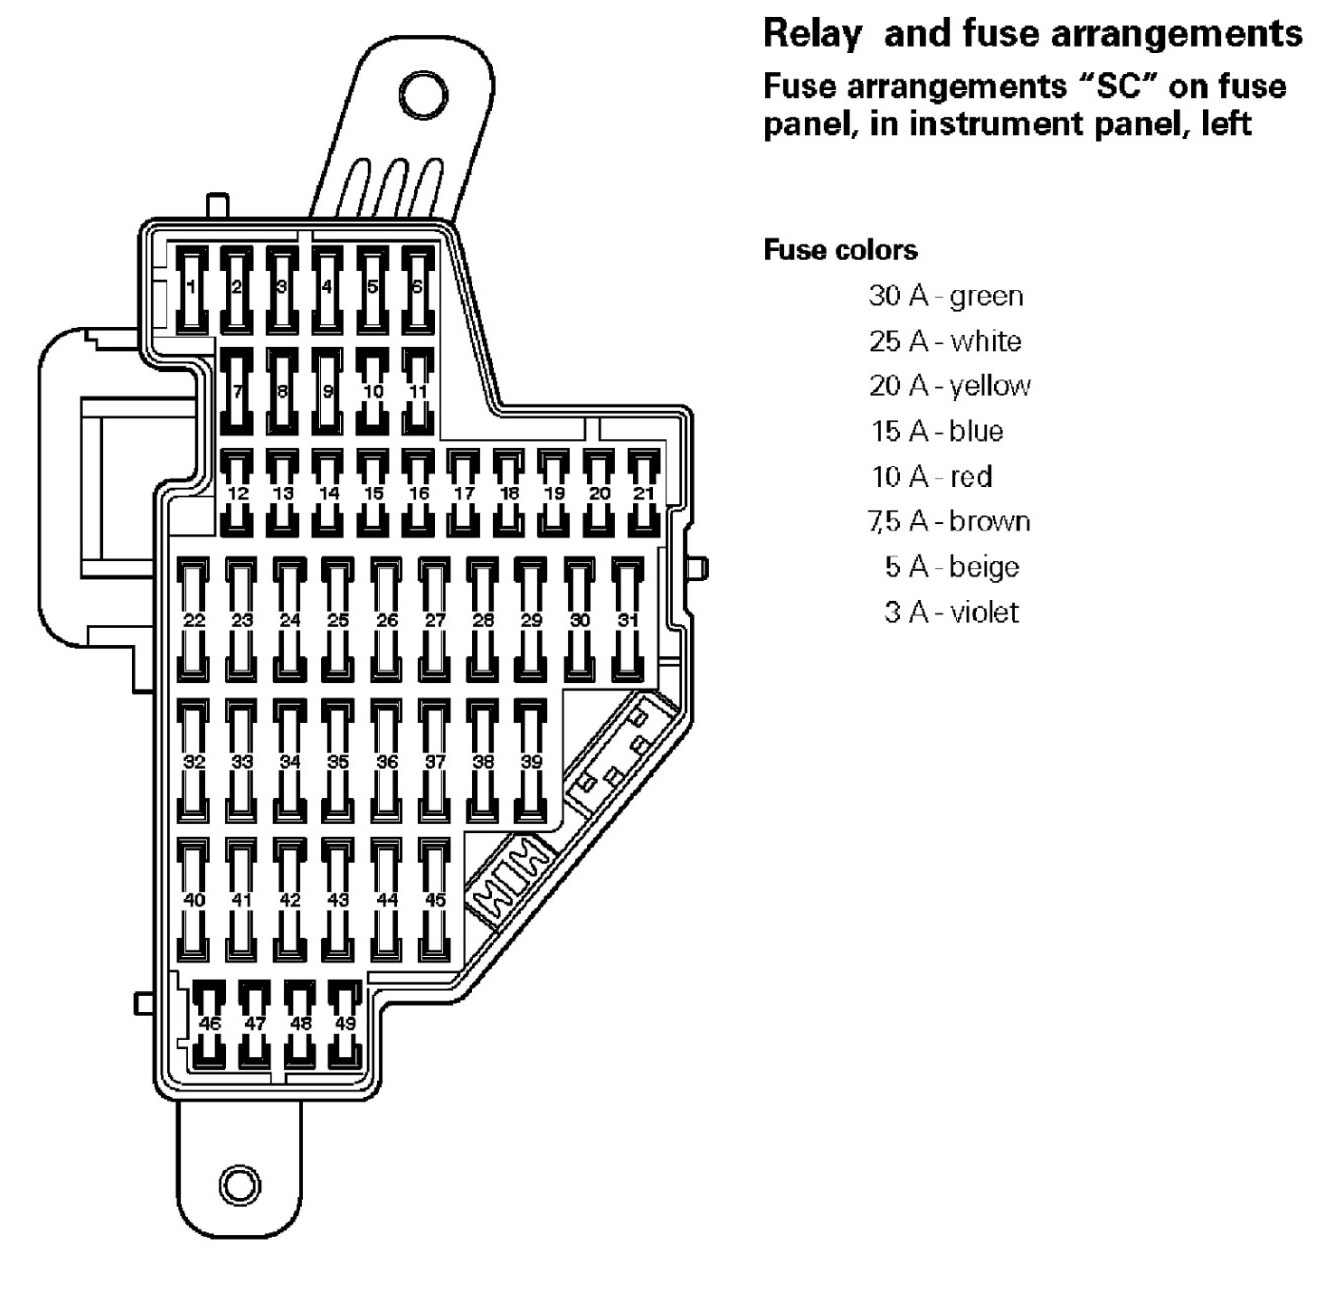 [FGZY_1612] 99 Vw Jetta Fuse Panel Diagram Database Panel